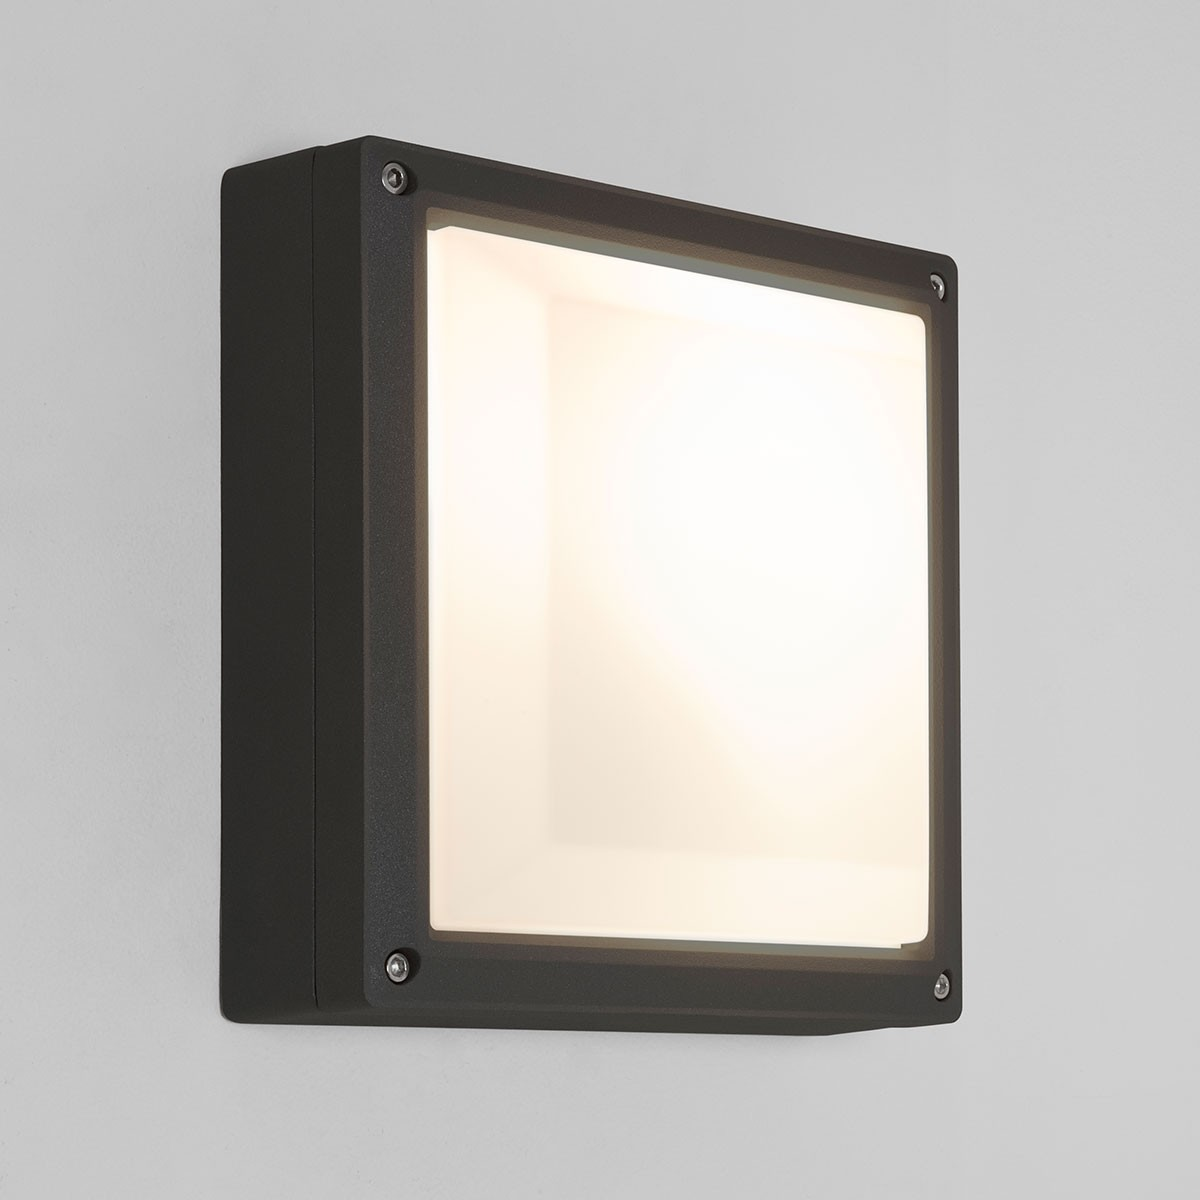 Astro Arta 210 Square Black Outdoor Wall Light at UK Electrical Supplies.